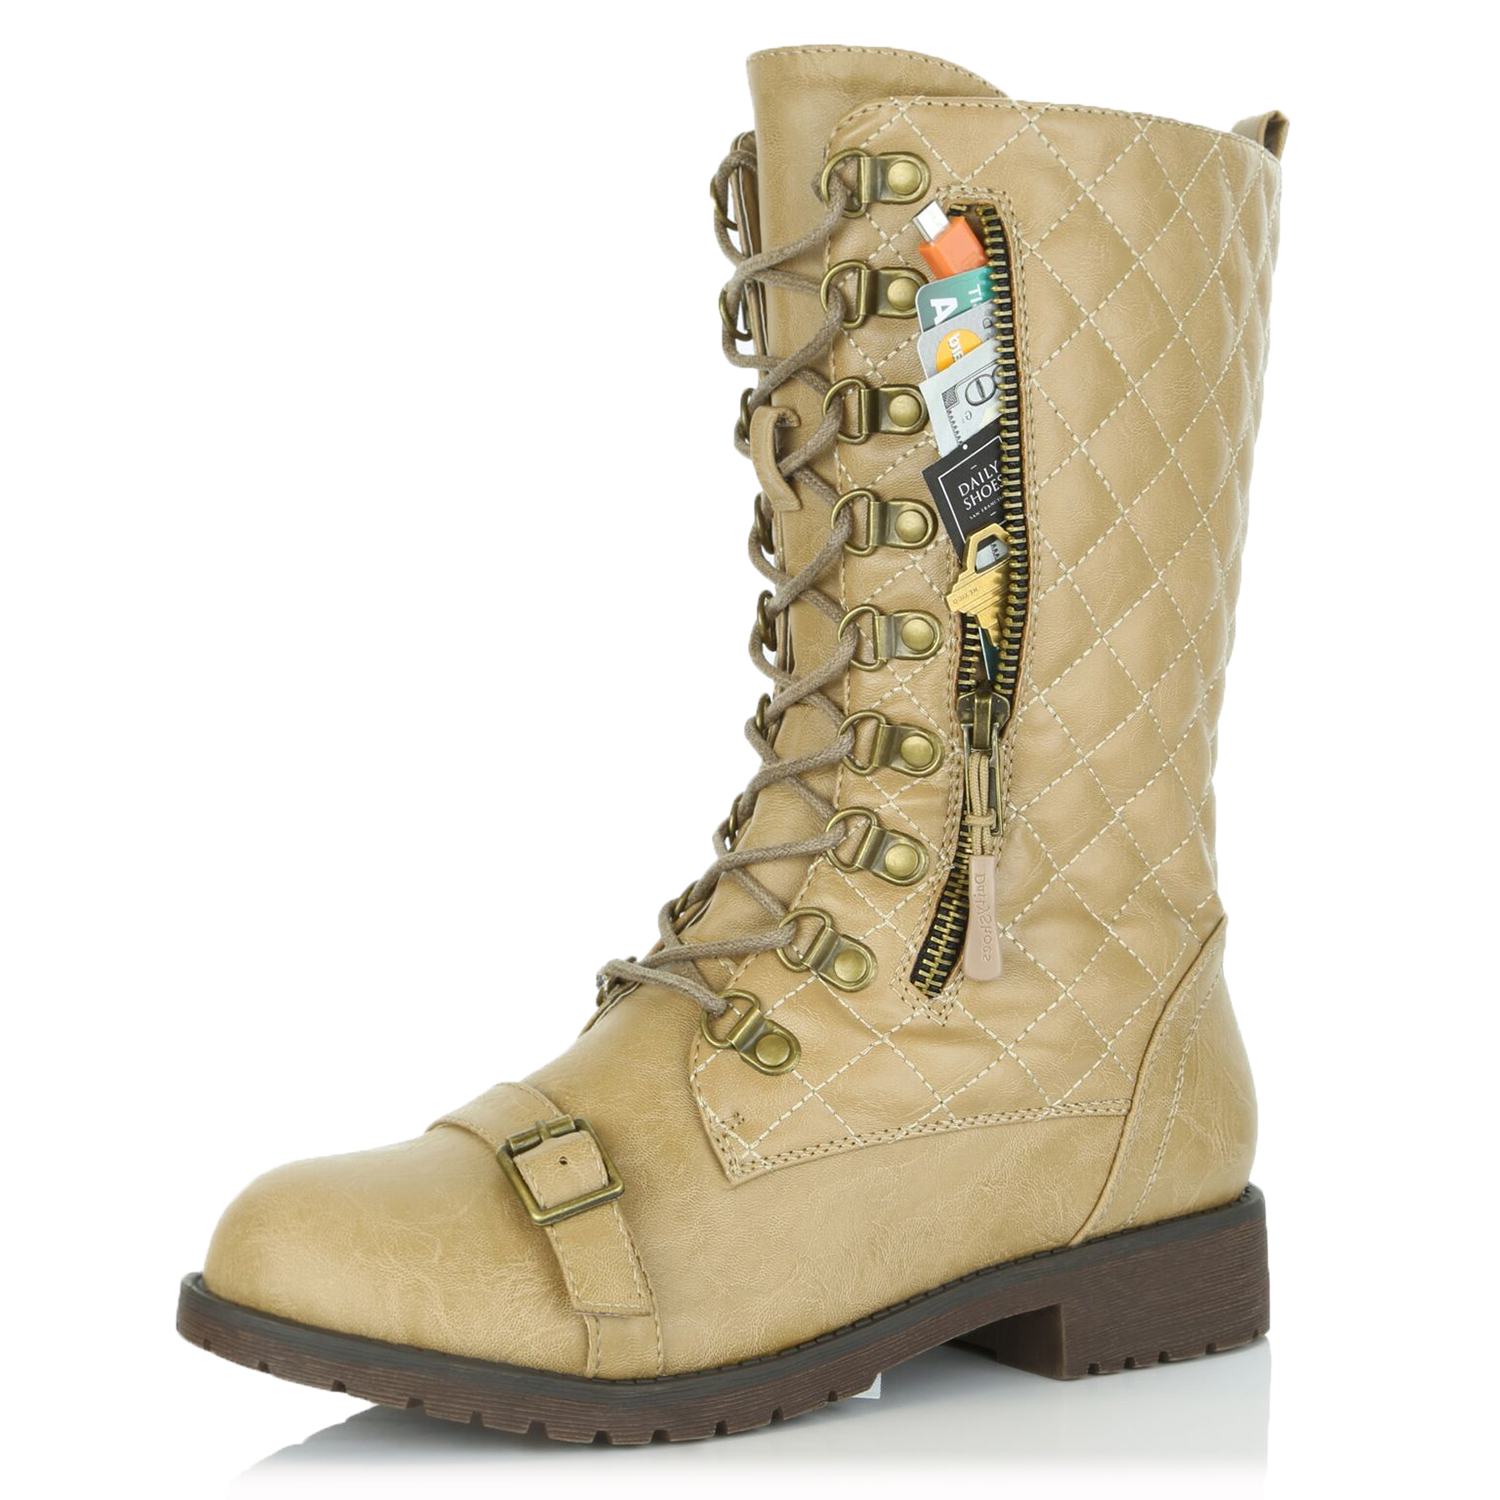 Military Lace Up Buckle Combat Boots Mid Knee High Exclusive Credit Card Pocket